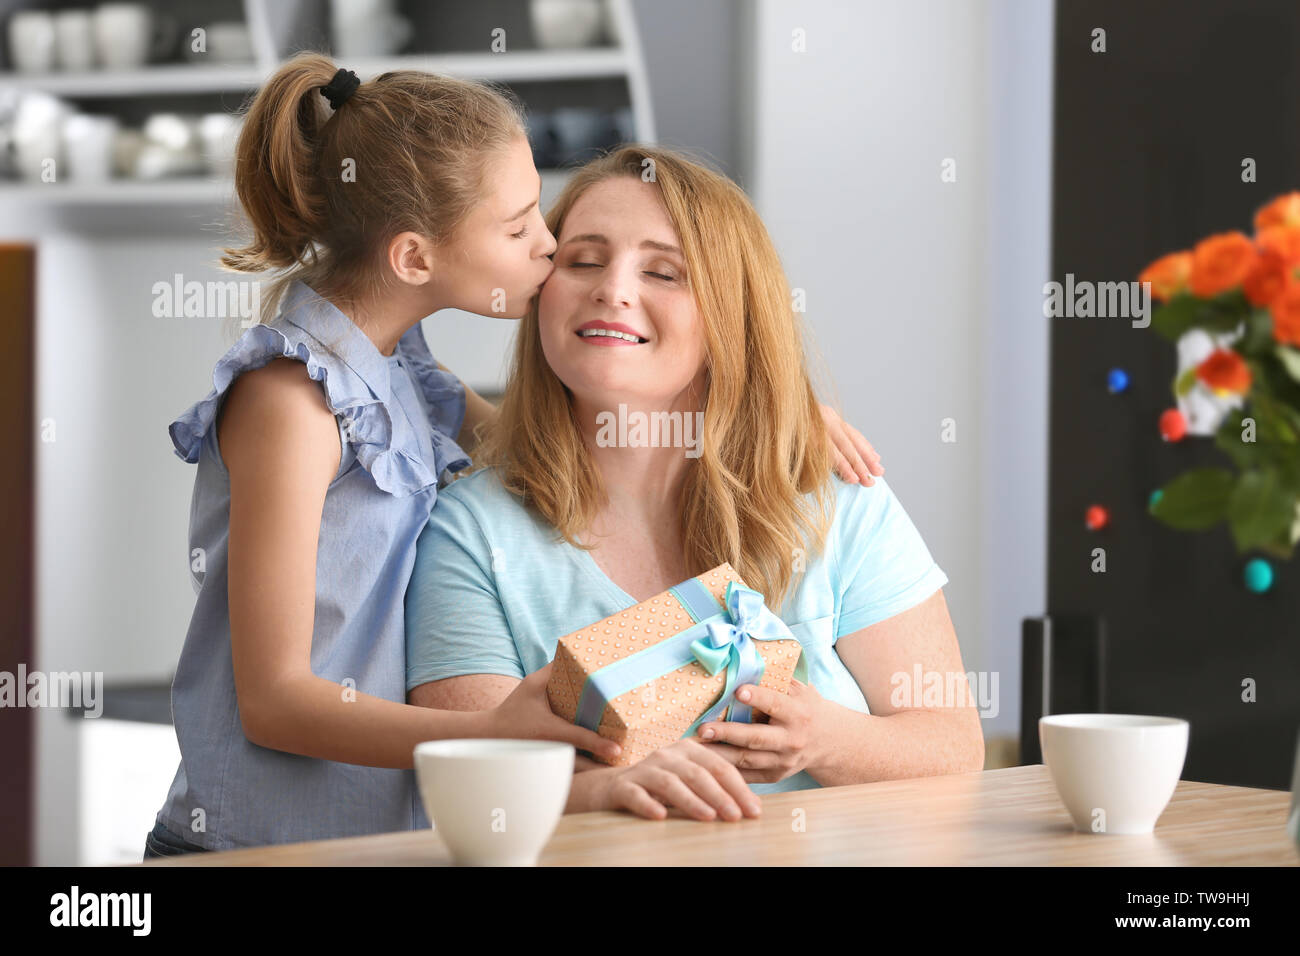 Cute little girl giving her mother a present in kitchen - Stock Image